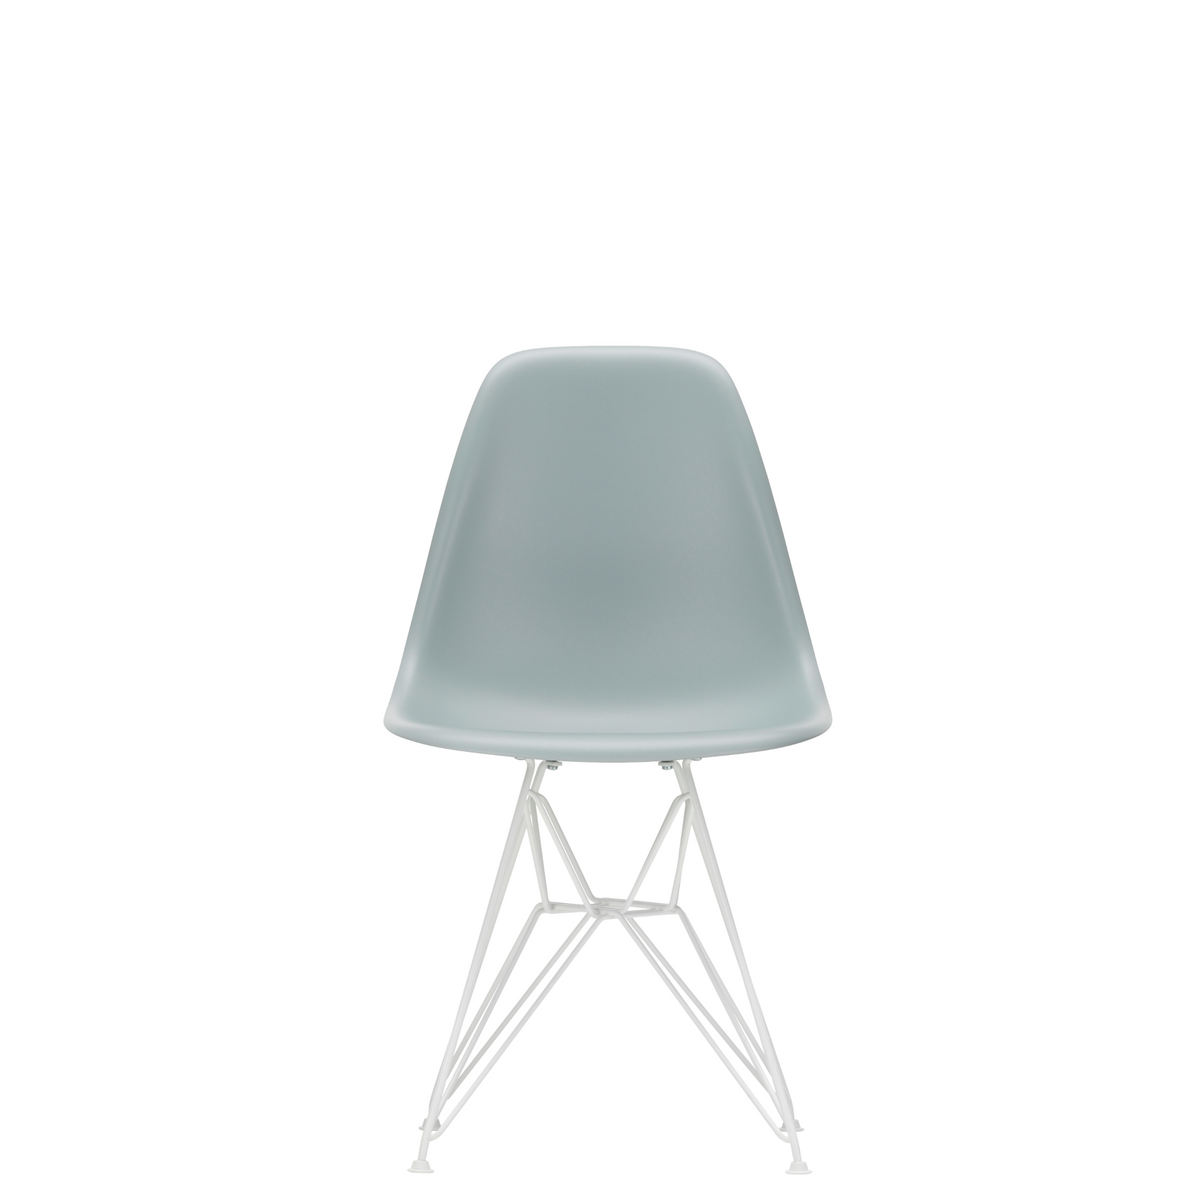 Vitra Eames Plastic Side Chair DSR Powder Coated for Outdoor Use. Light Grey Shell, White Powdercoated Base